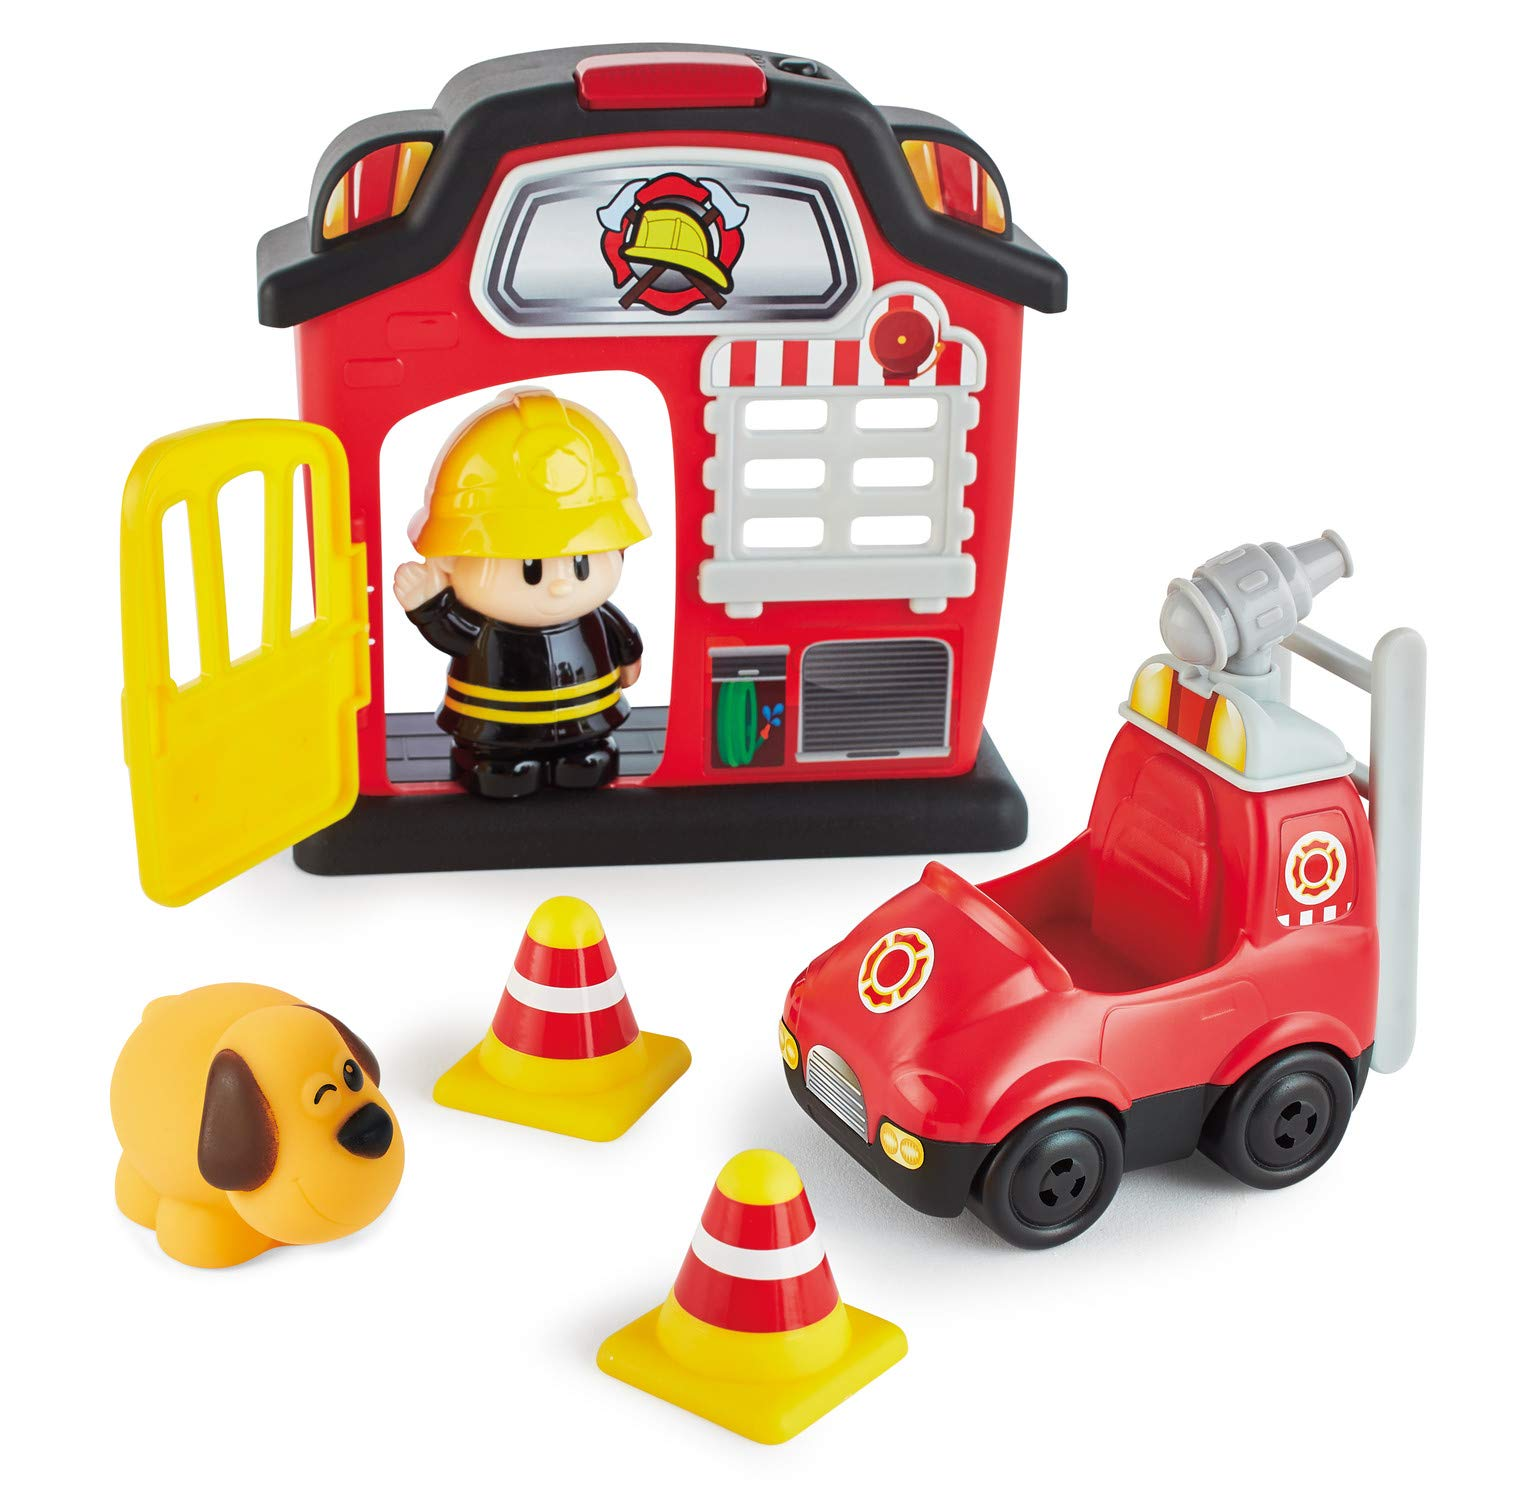 Kidoozie Lights 'n Sounds Fire Station – 12 Piece Playset